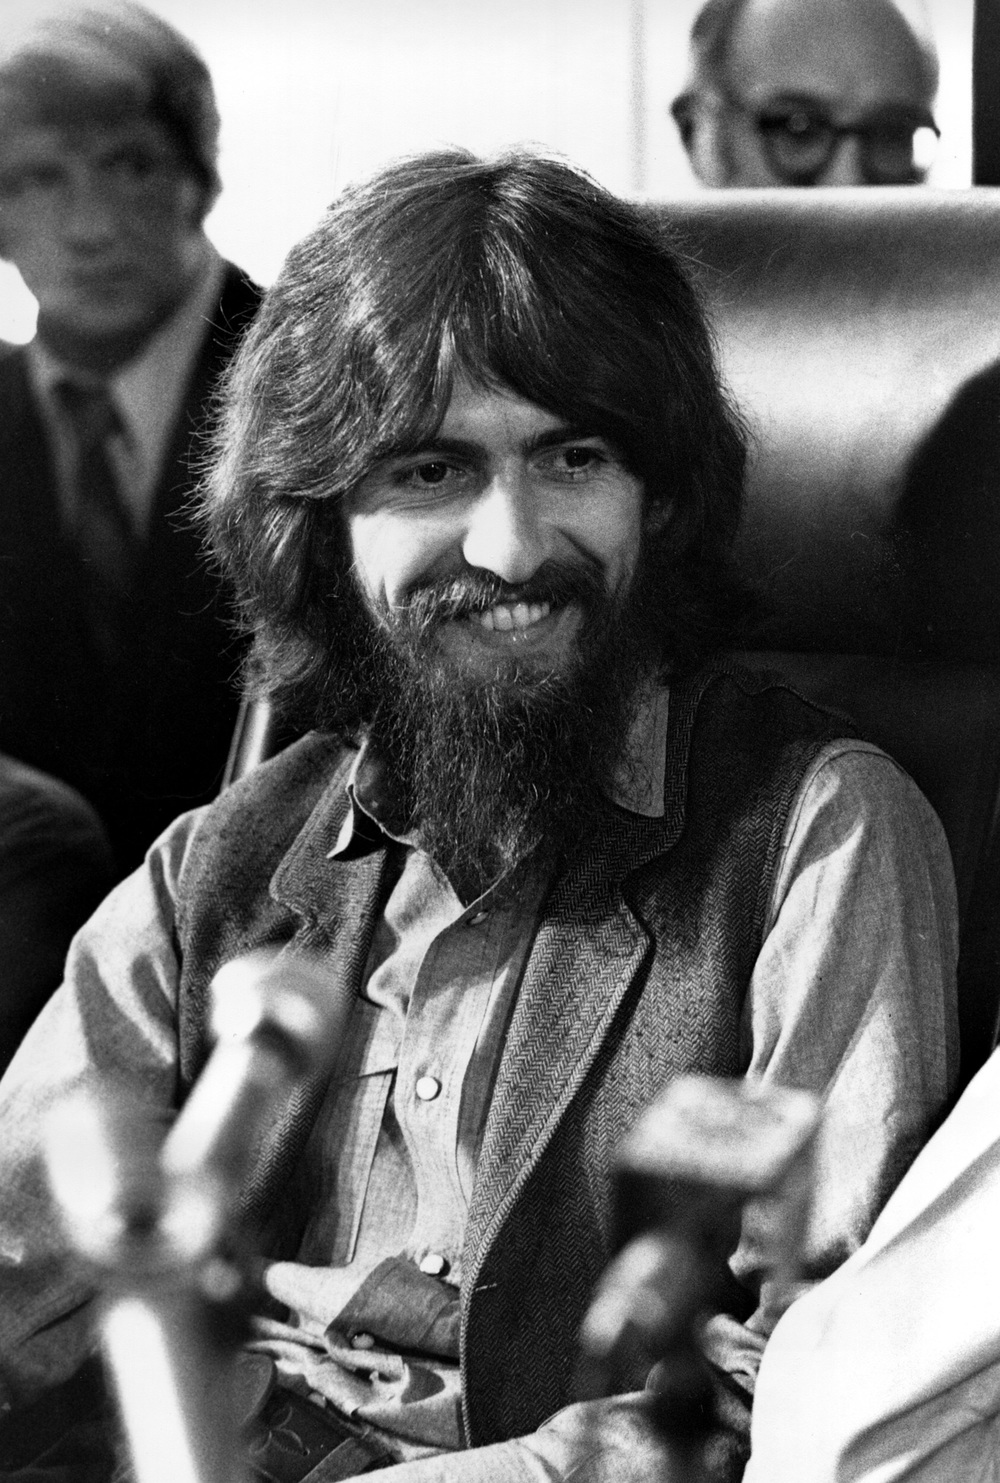 George Harrison at a press conference, 1971.